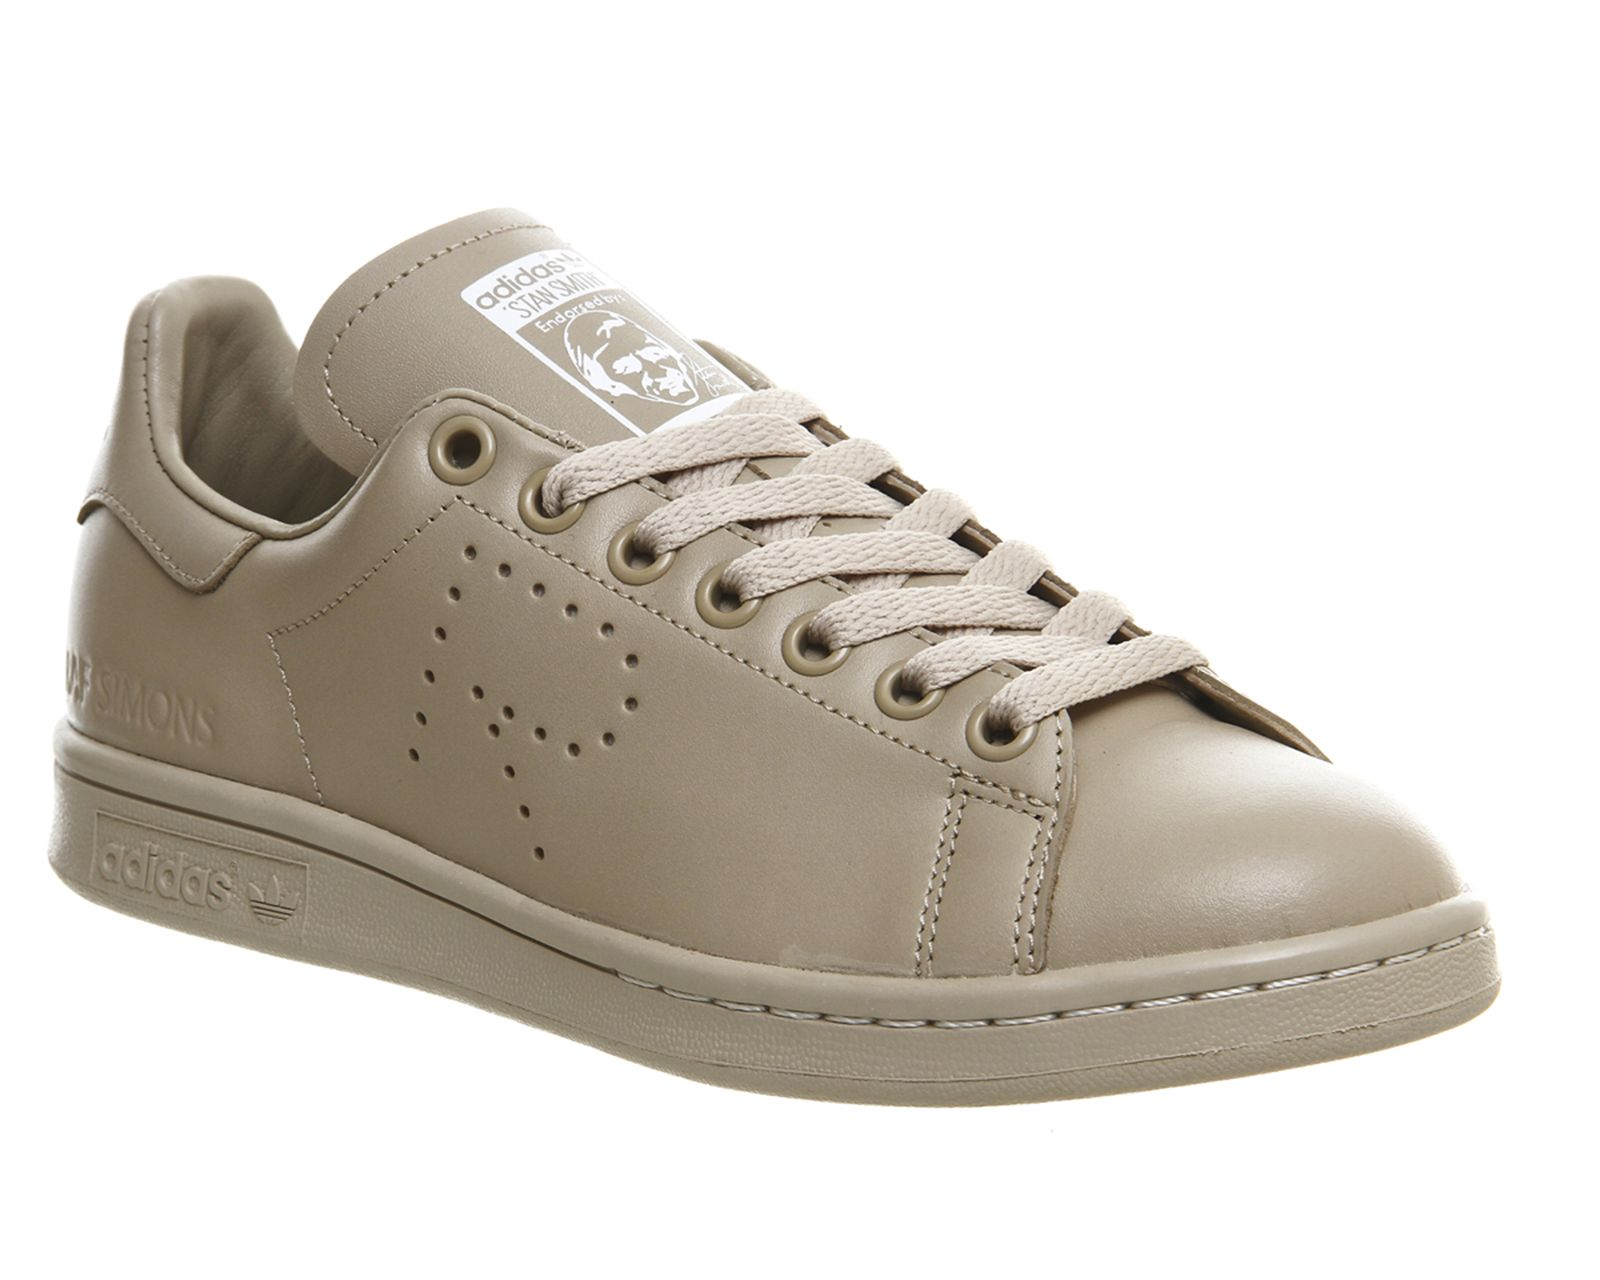 Adidas Raf Simons Raf X Stan Smith Dust Sand - Unisex Sports £225